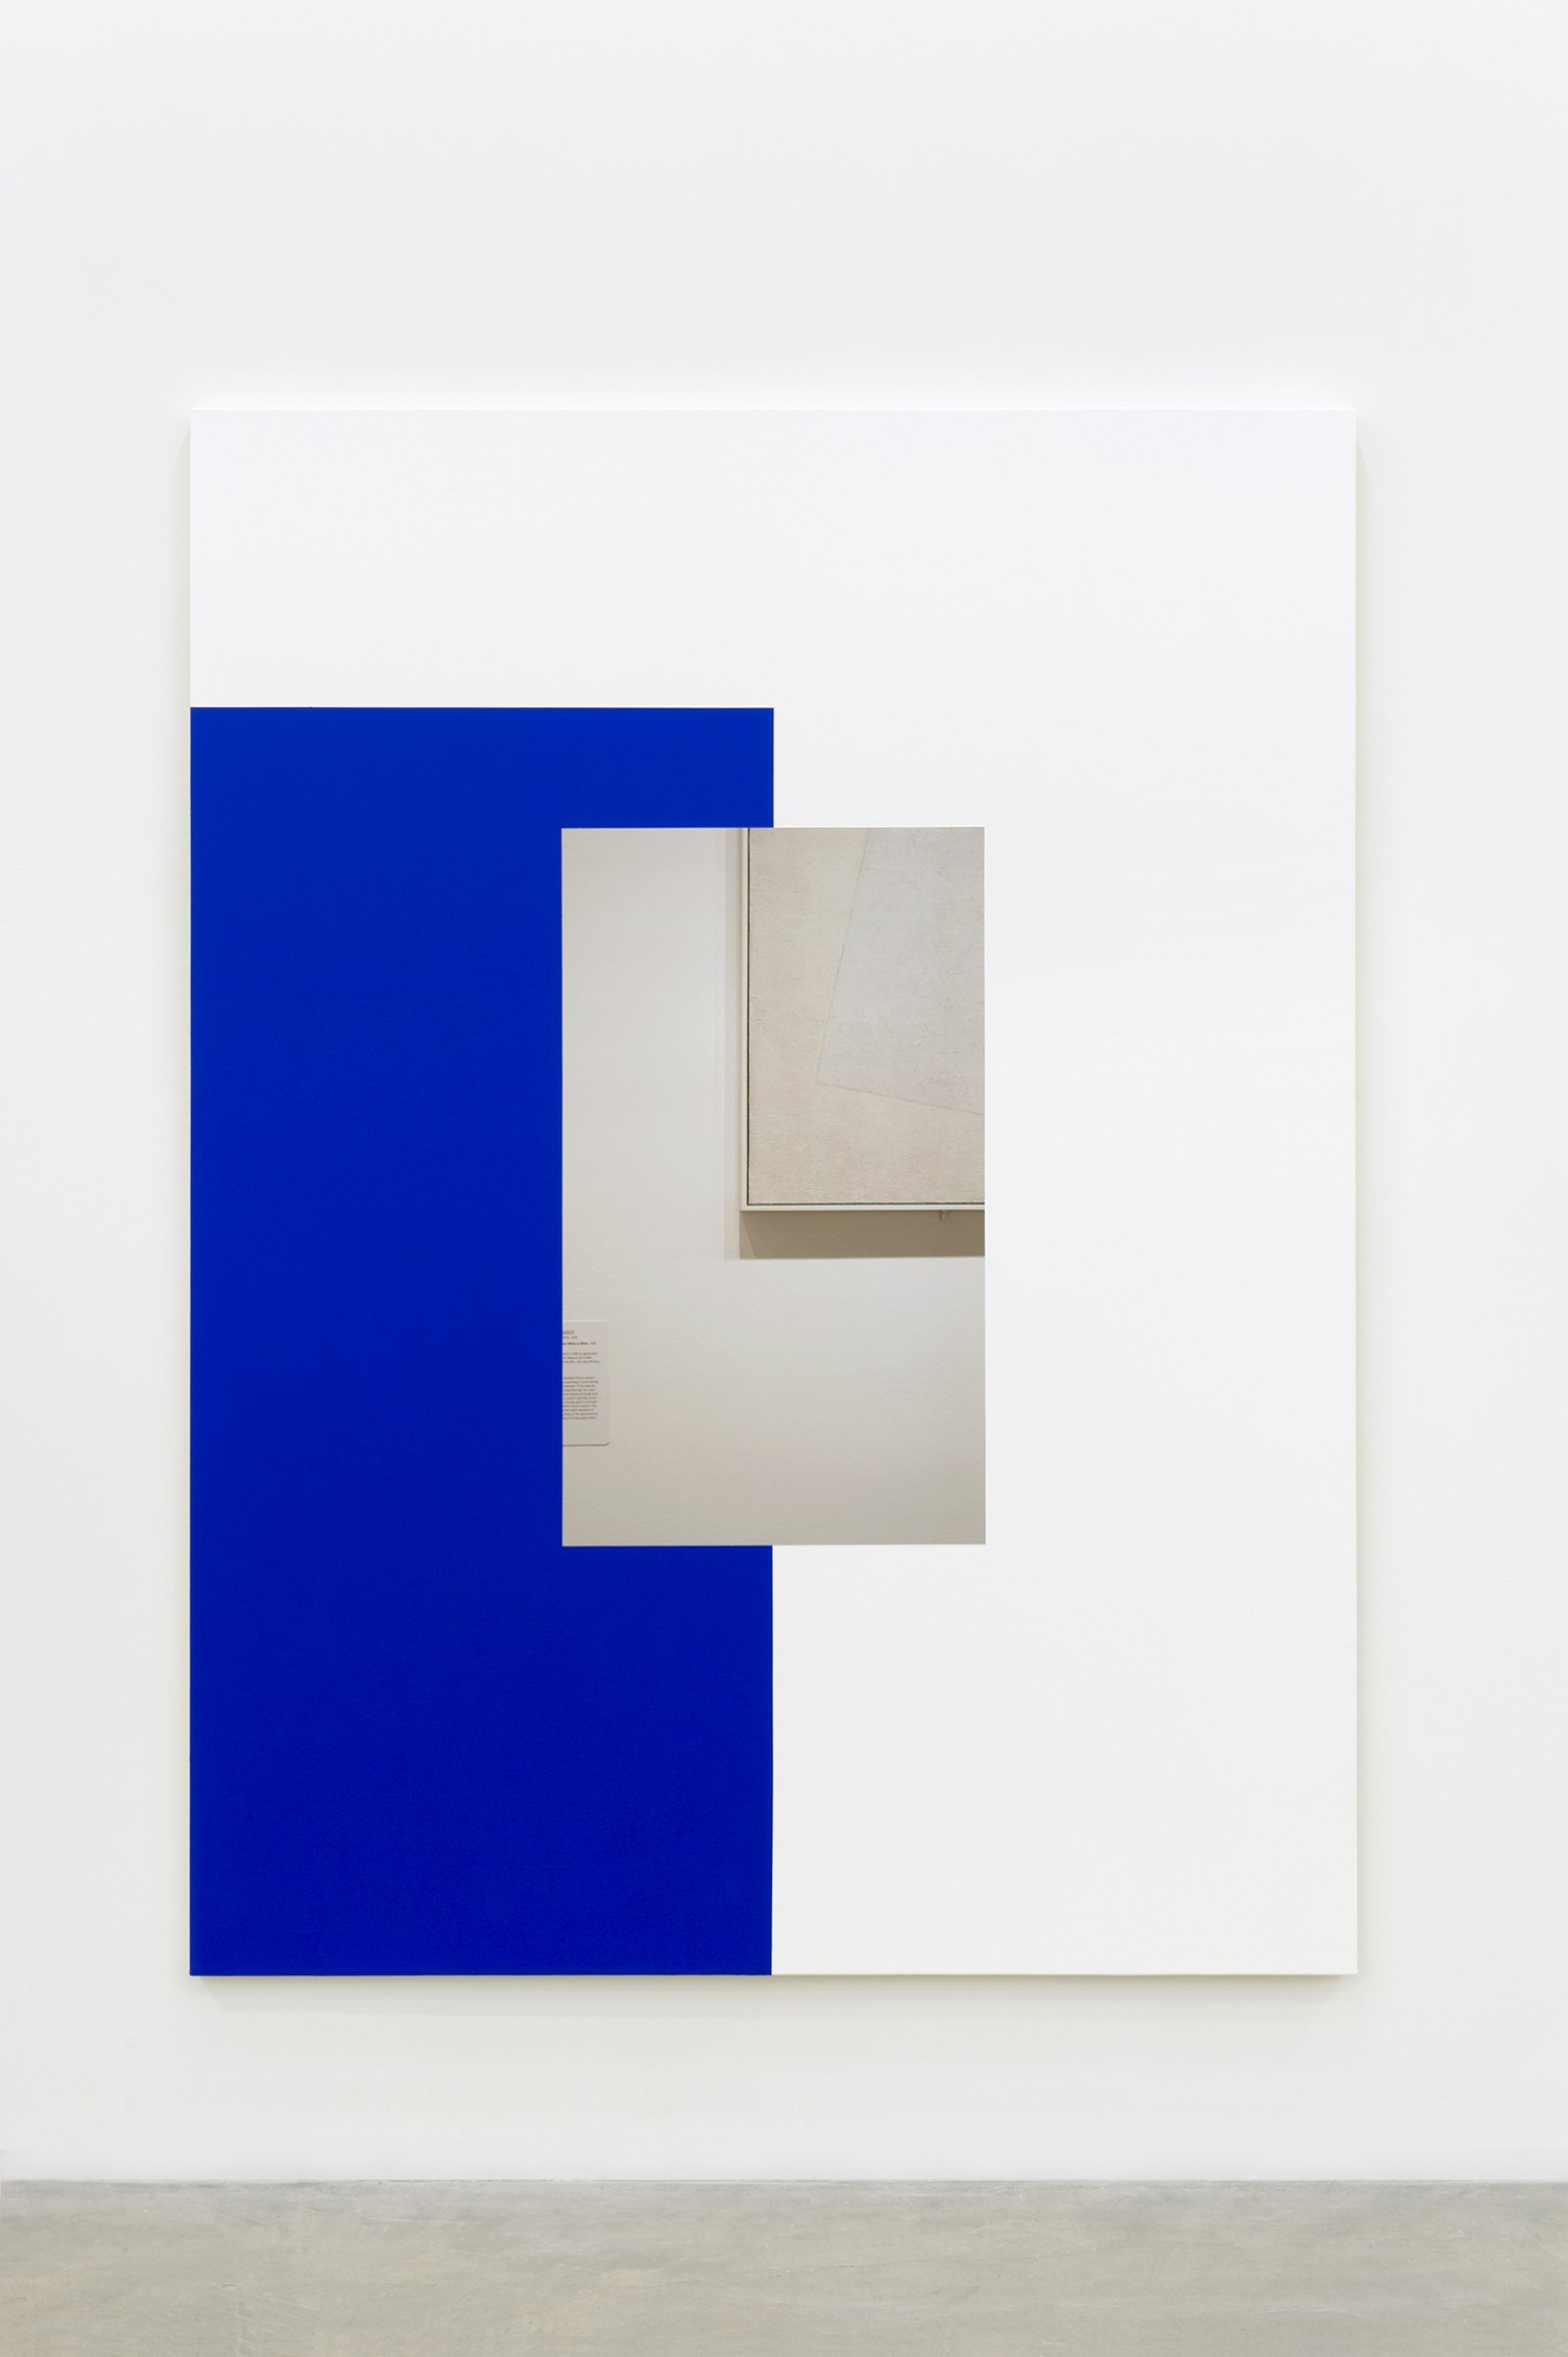 Ian Wallace, Abstract Painting (Blue On White), 2011, photolaminate and acrylic on canvas, 80 x 60 in. (203 x 153 cm) by Ian Wallace